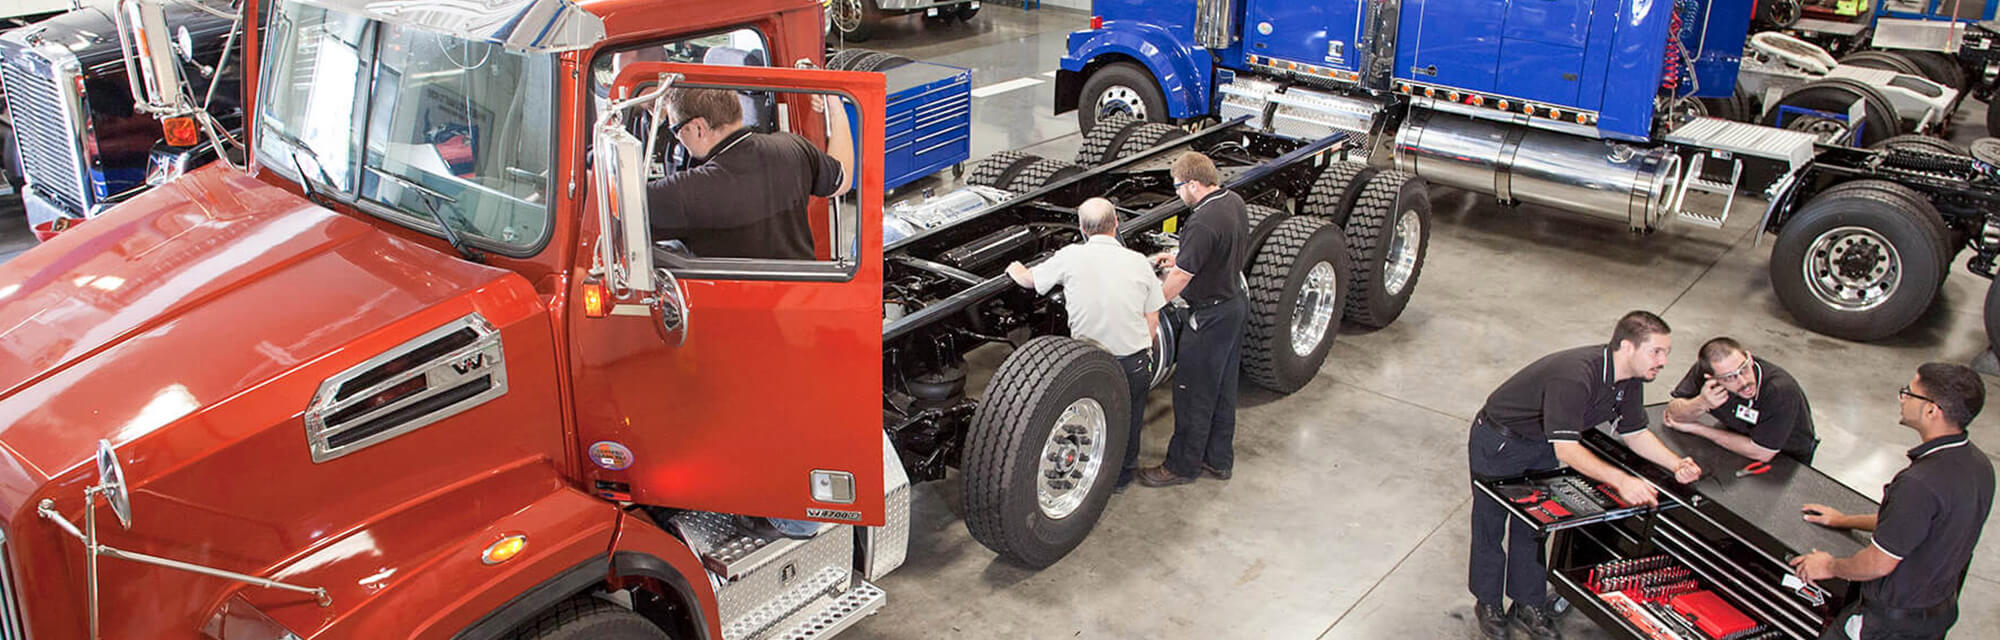 Diesel Students and Teachers Working Hands-on